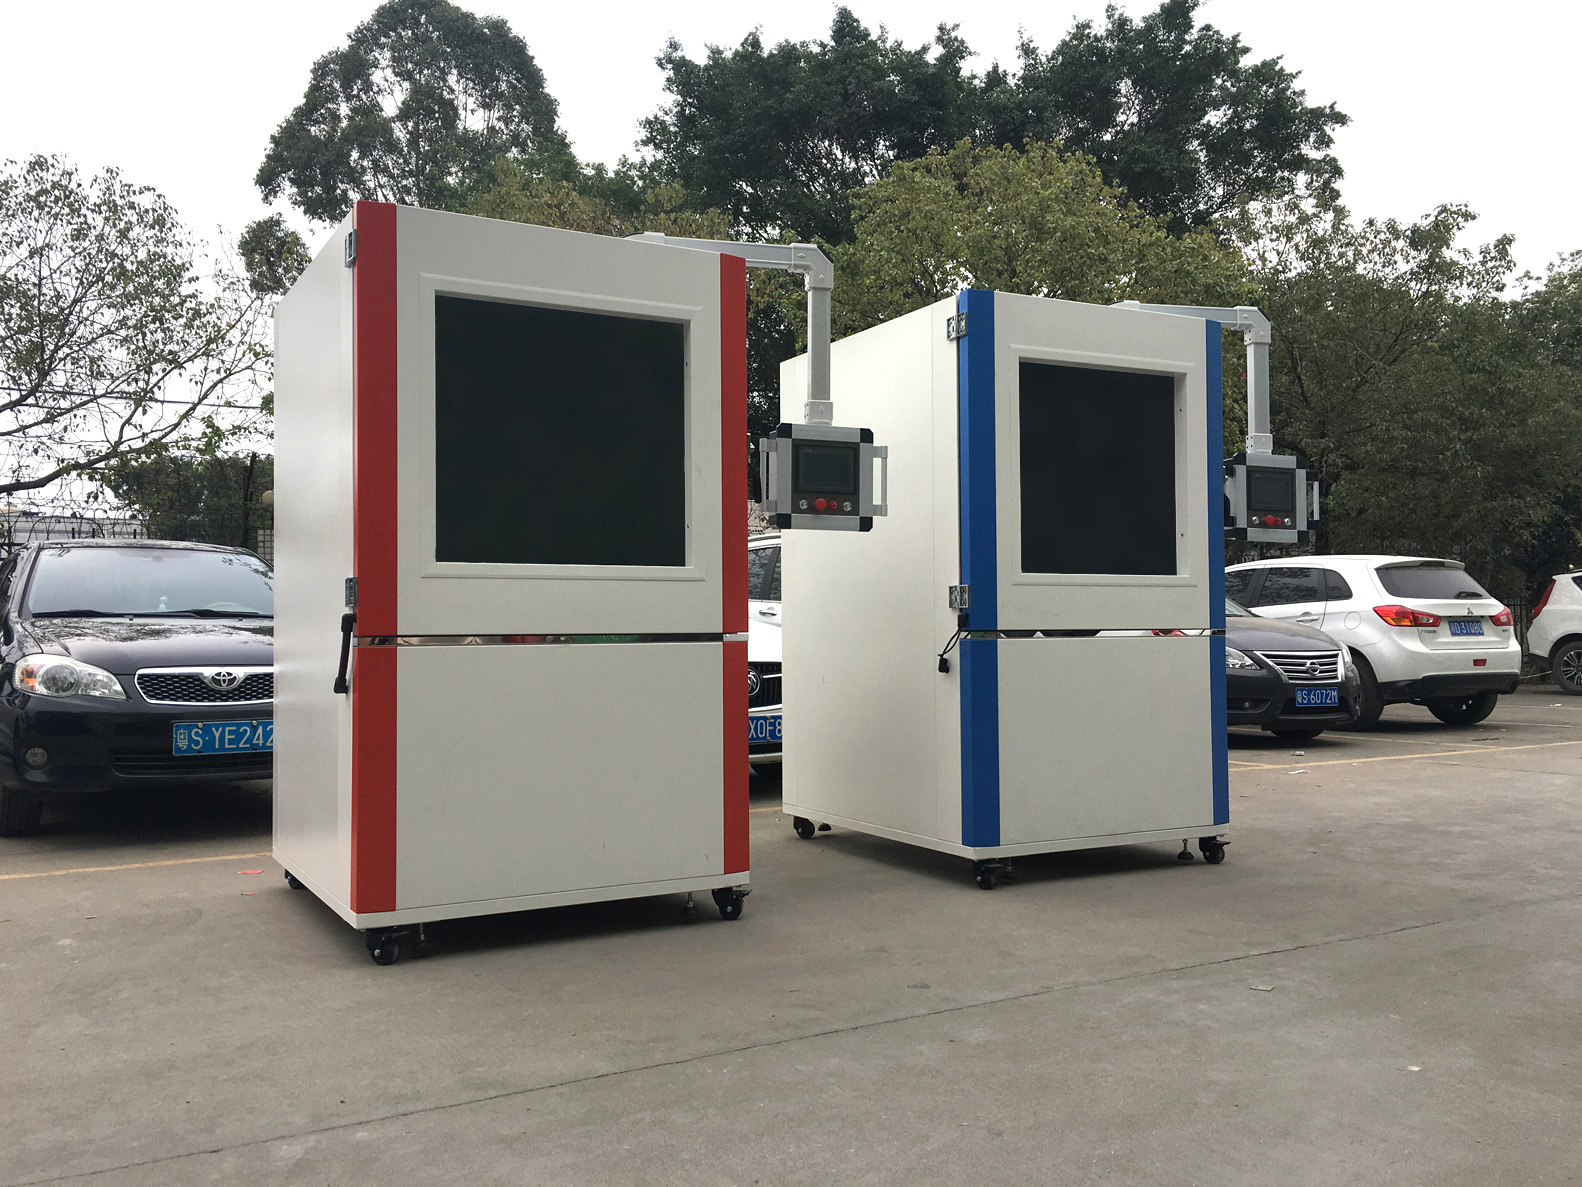 MIL STD 810G sand dust test chamber